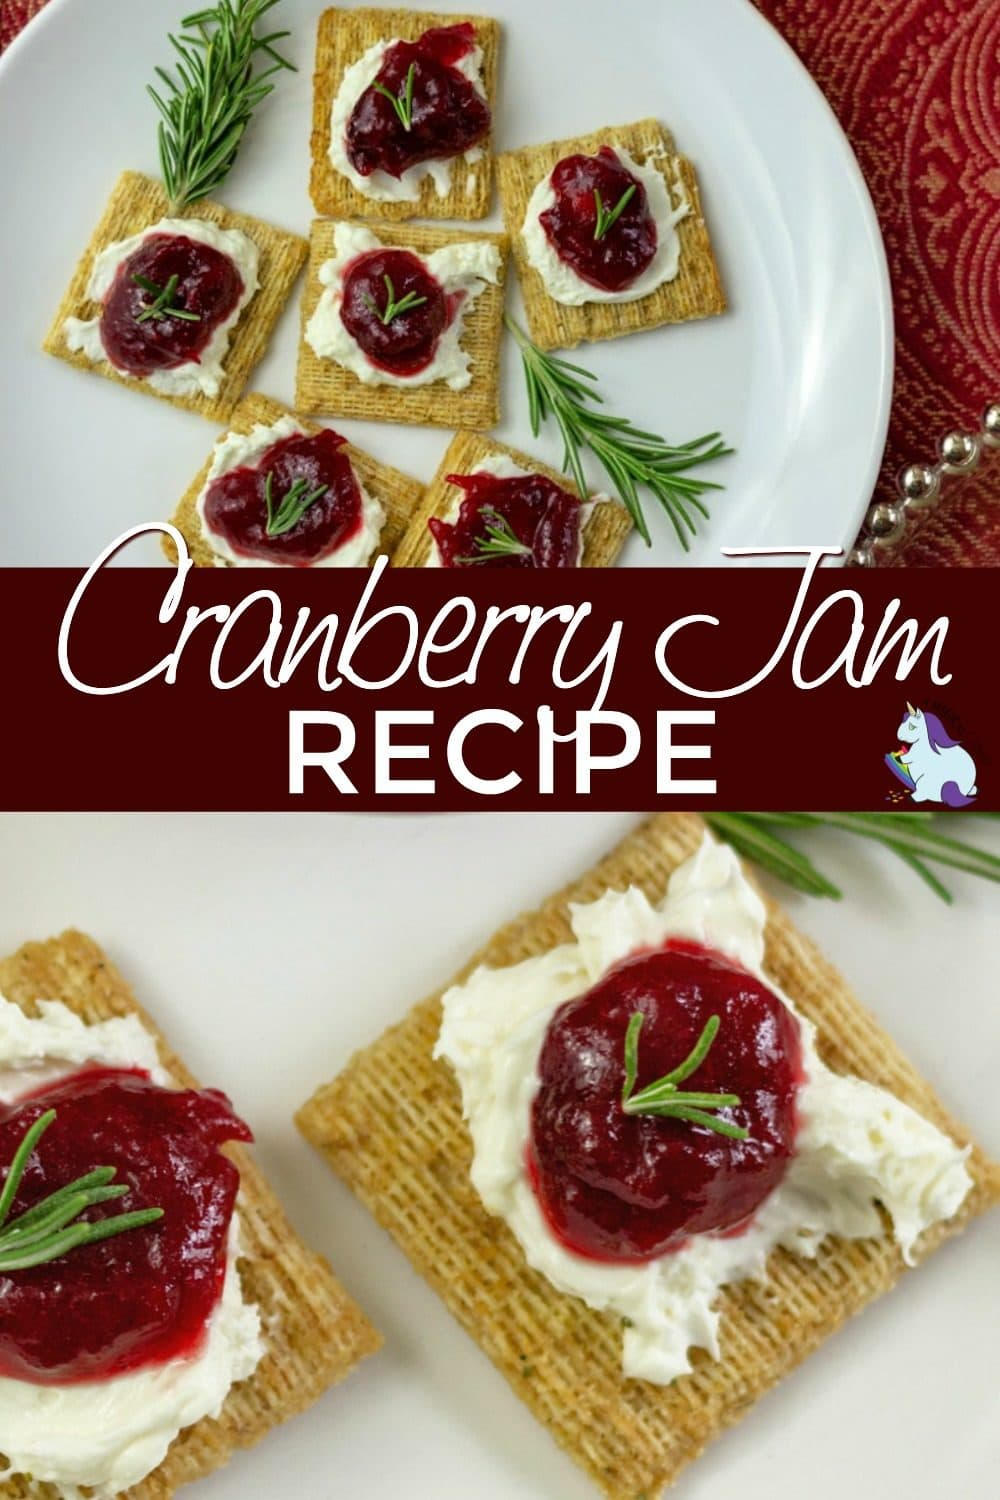 Crackers with cranberry jam on top